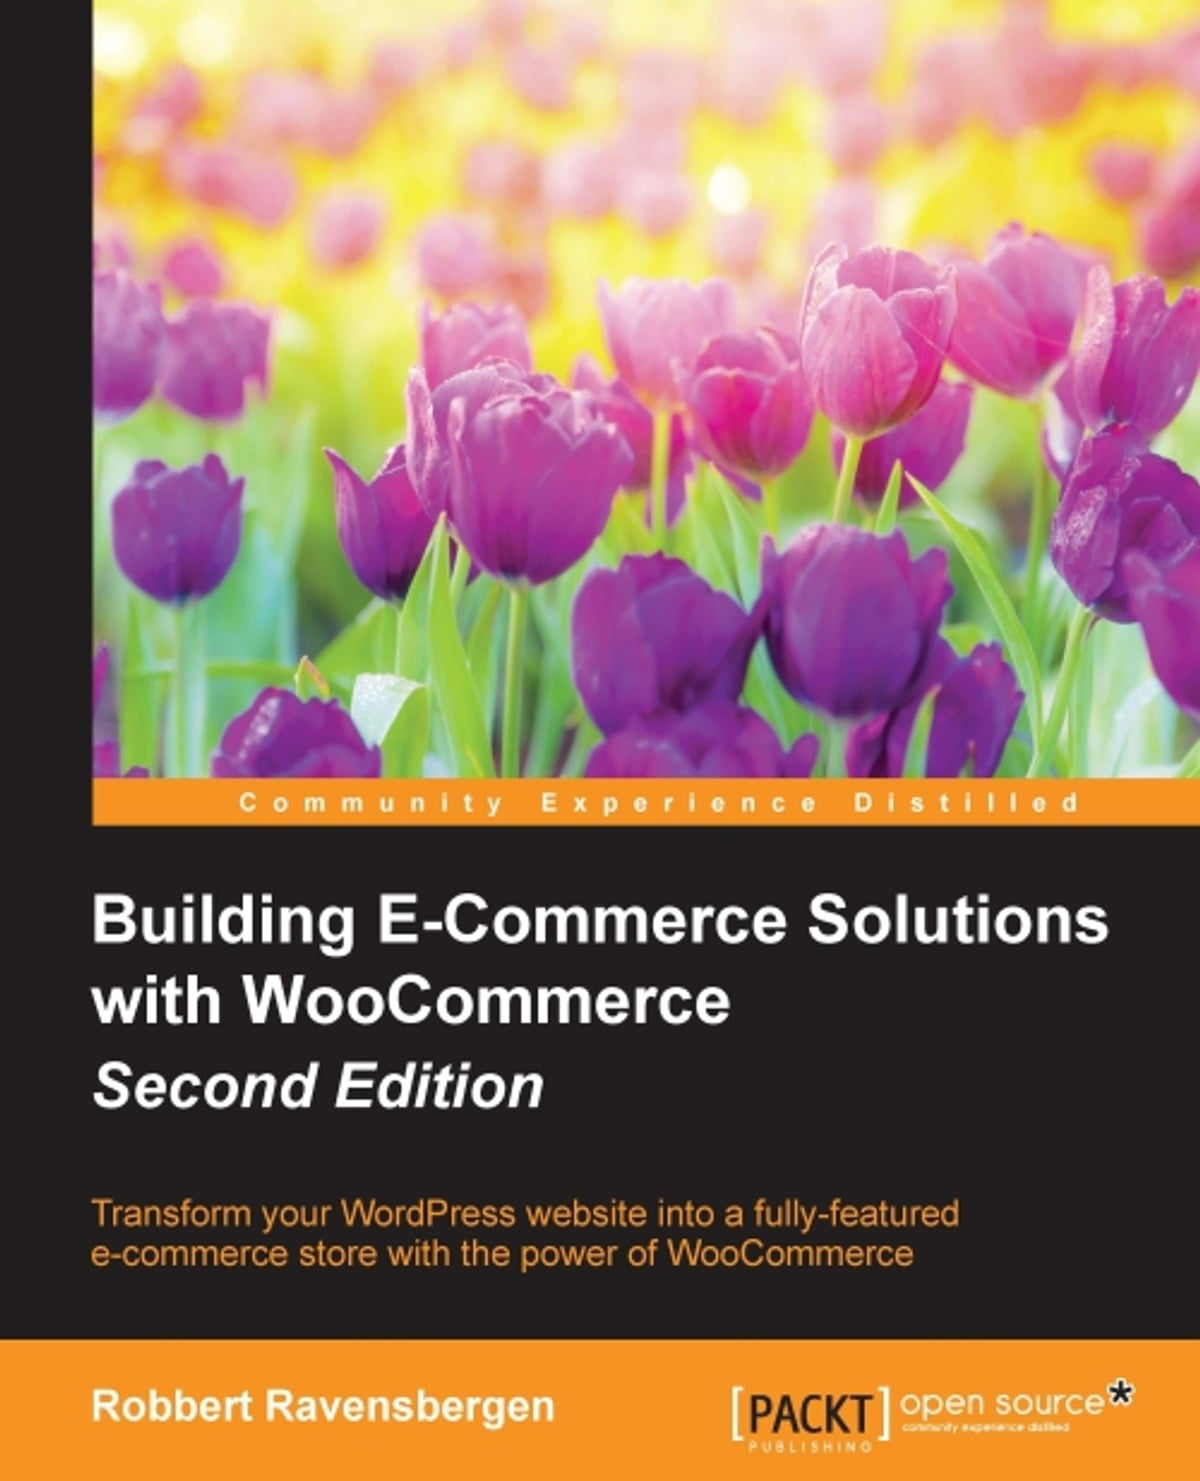 Building E-Commerce Solutions with WooCommerce - Second Edition eBook by Robbert  Ravensbergen - 9781785889110 | Rakuten Kobo